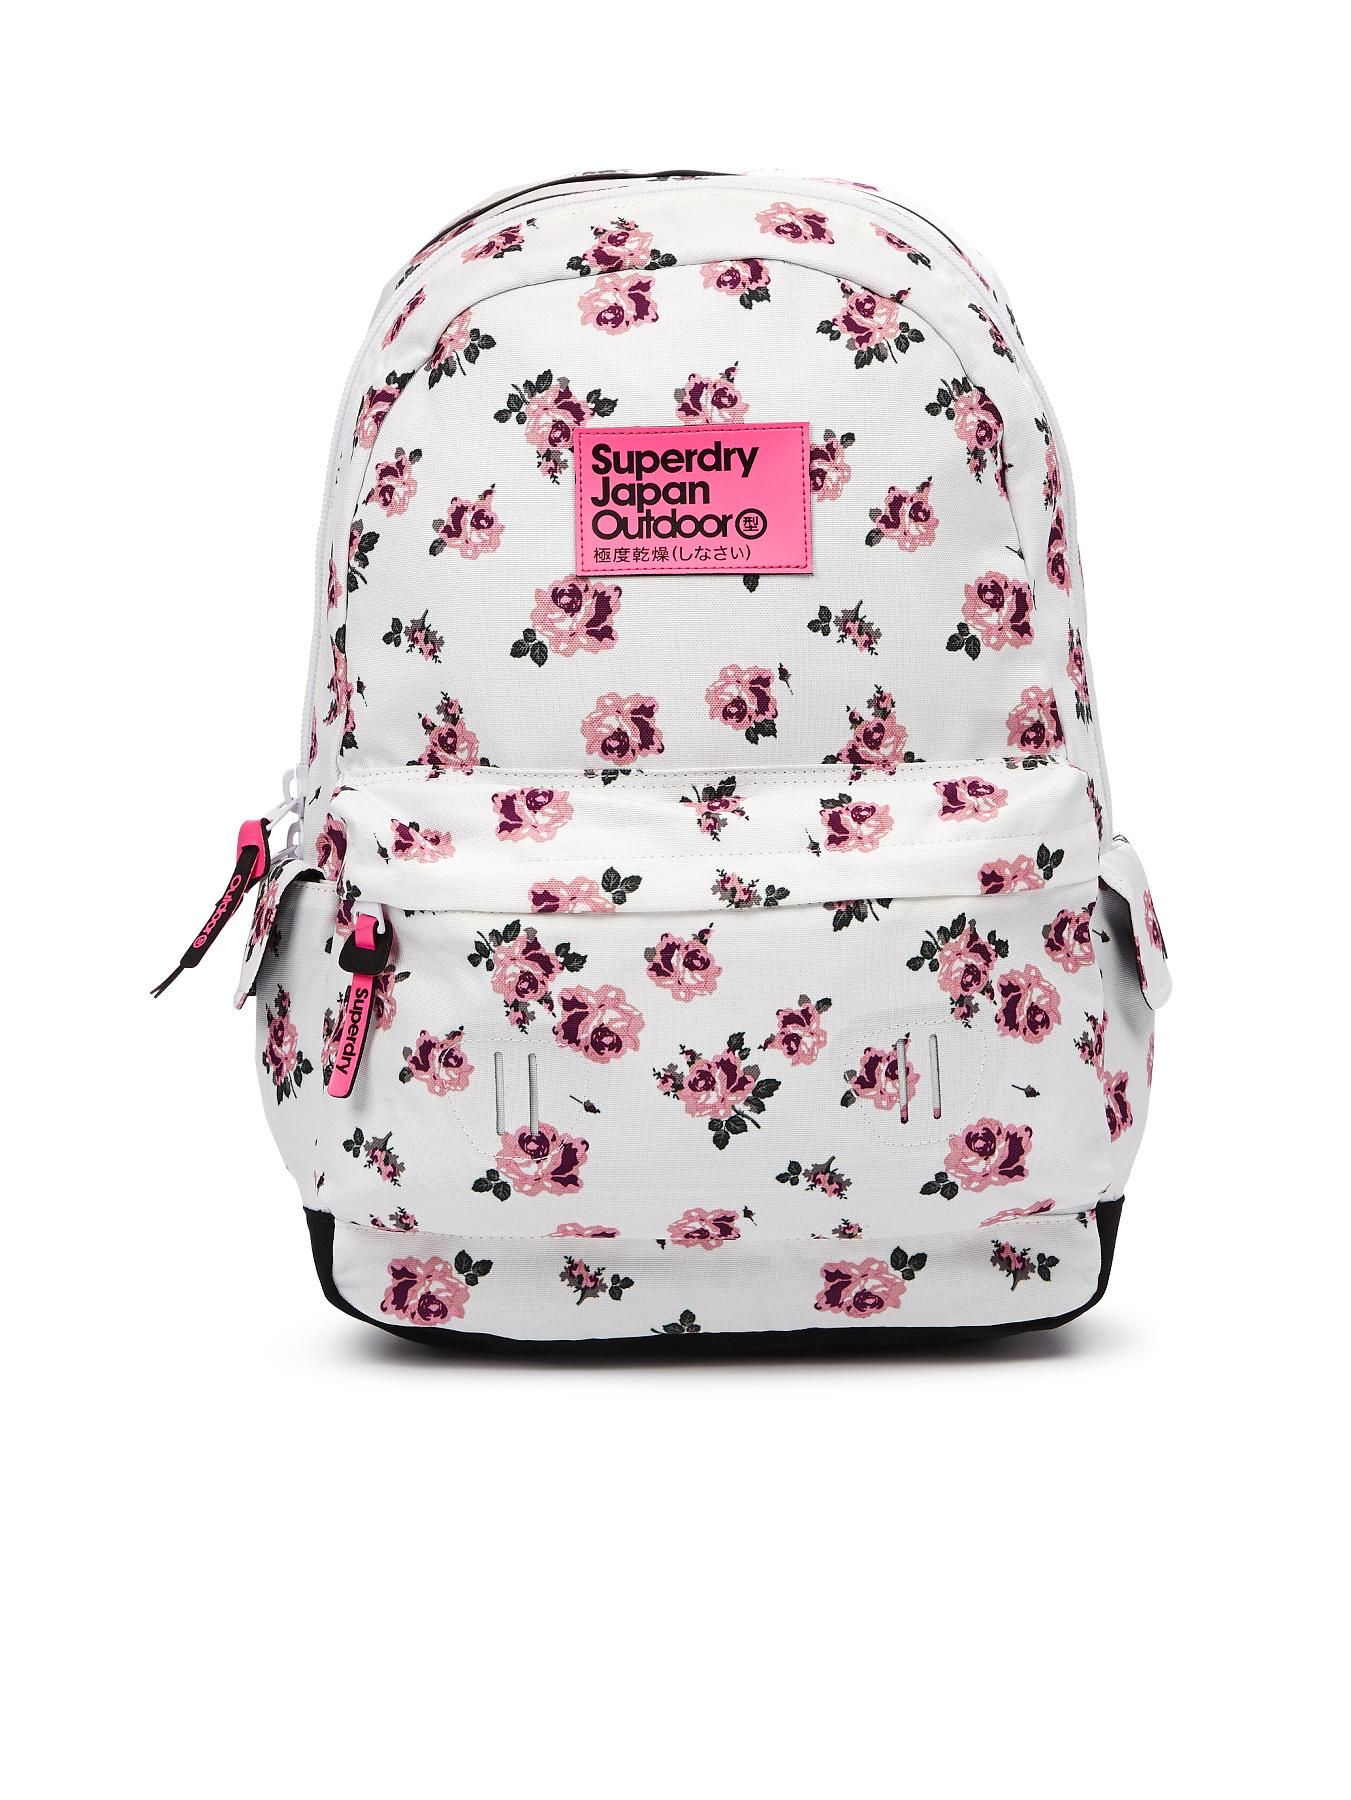 Womens Backpack by Superdry   Backpacks   Backpacks, Bags, Superdry ... a40d109097